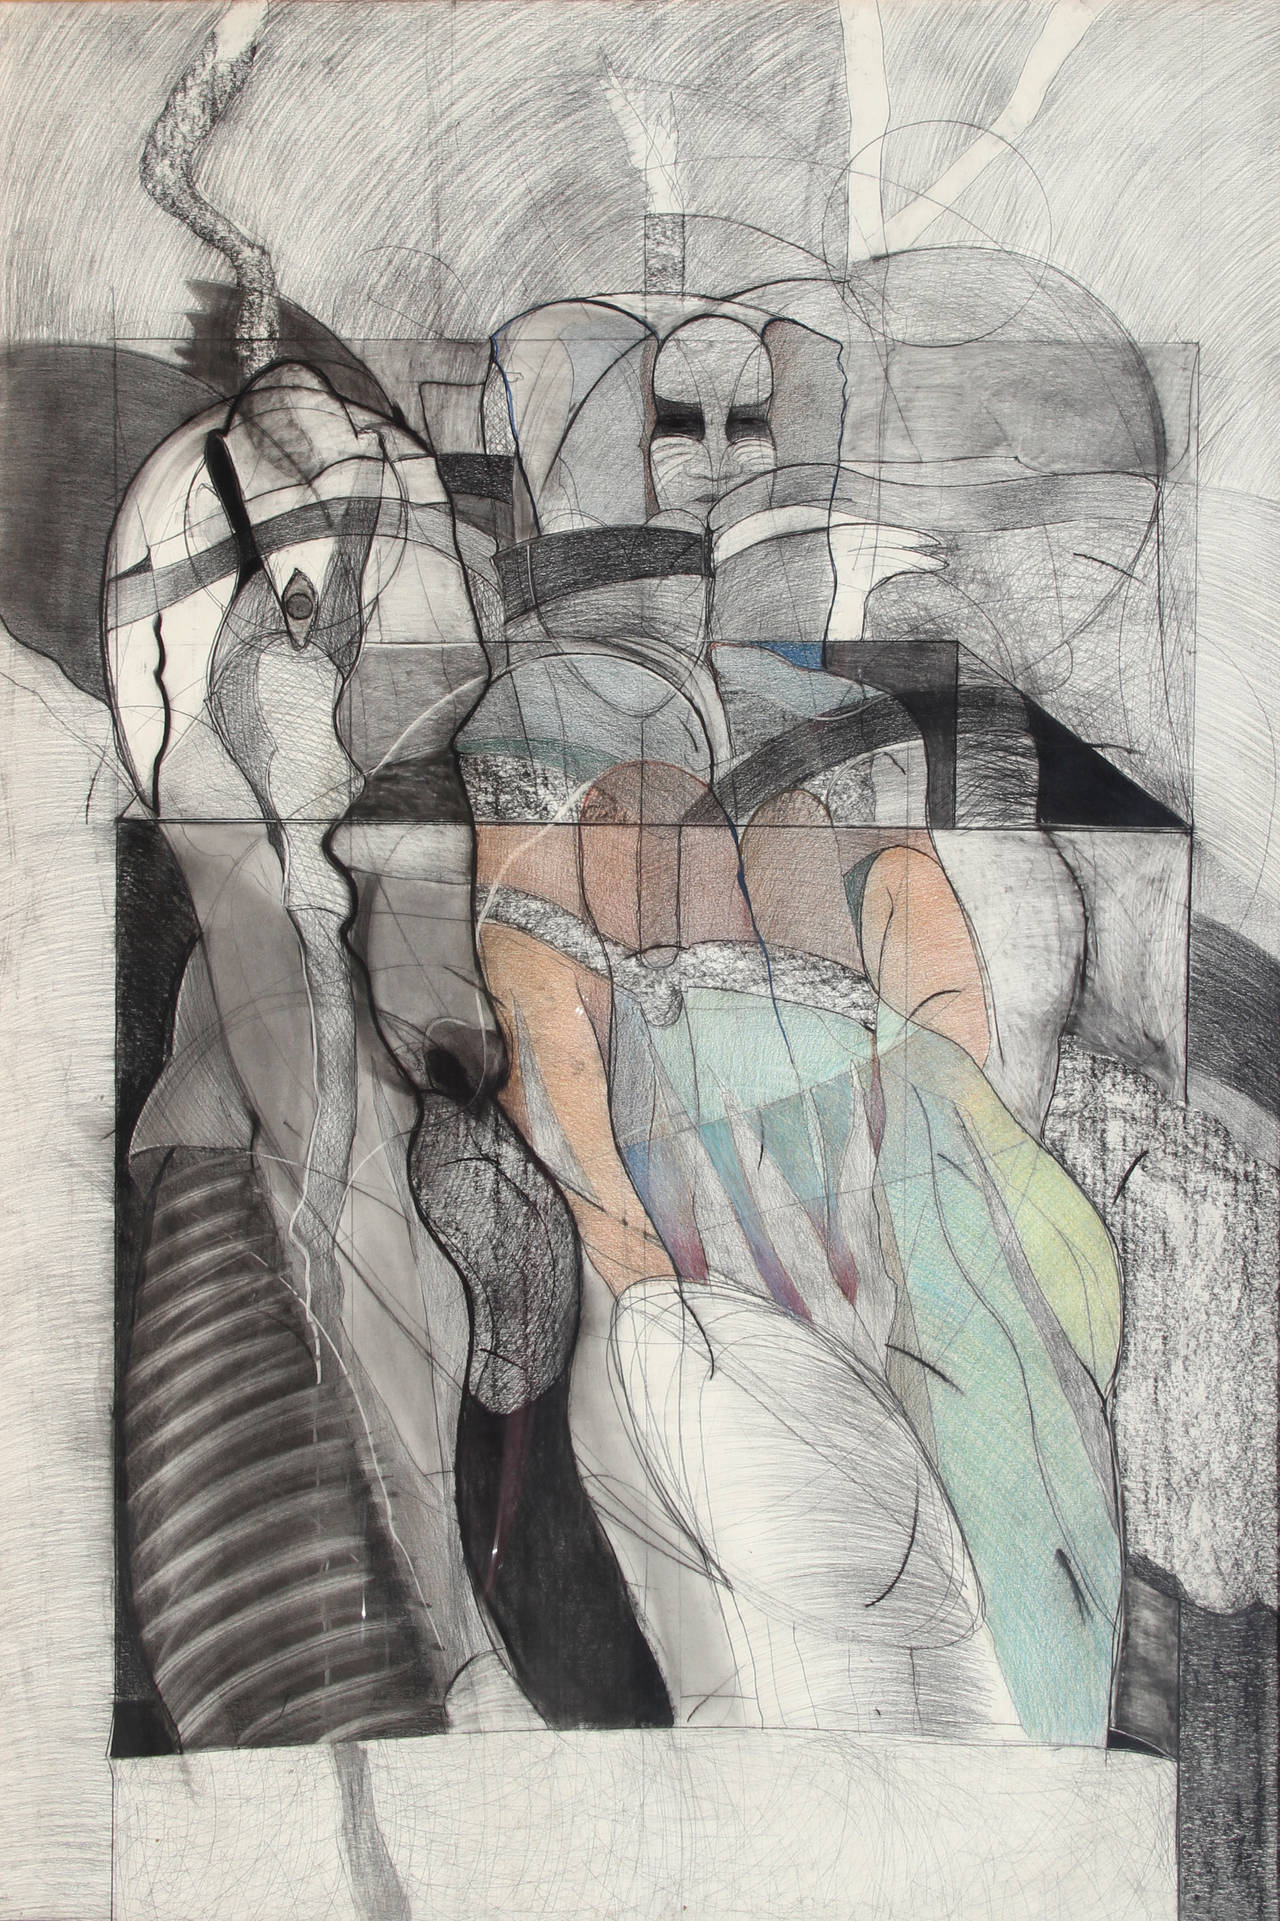 A mixed media drawing by Michael Platt from 1981. A representational image of a figure in a cool, subdued color pallet. Platt creates artwork that centers on figurative explorations of life's survivors, the marginalized, referencing history and